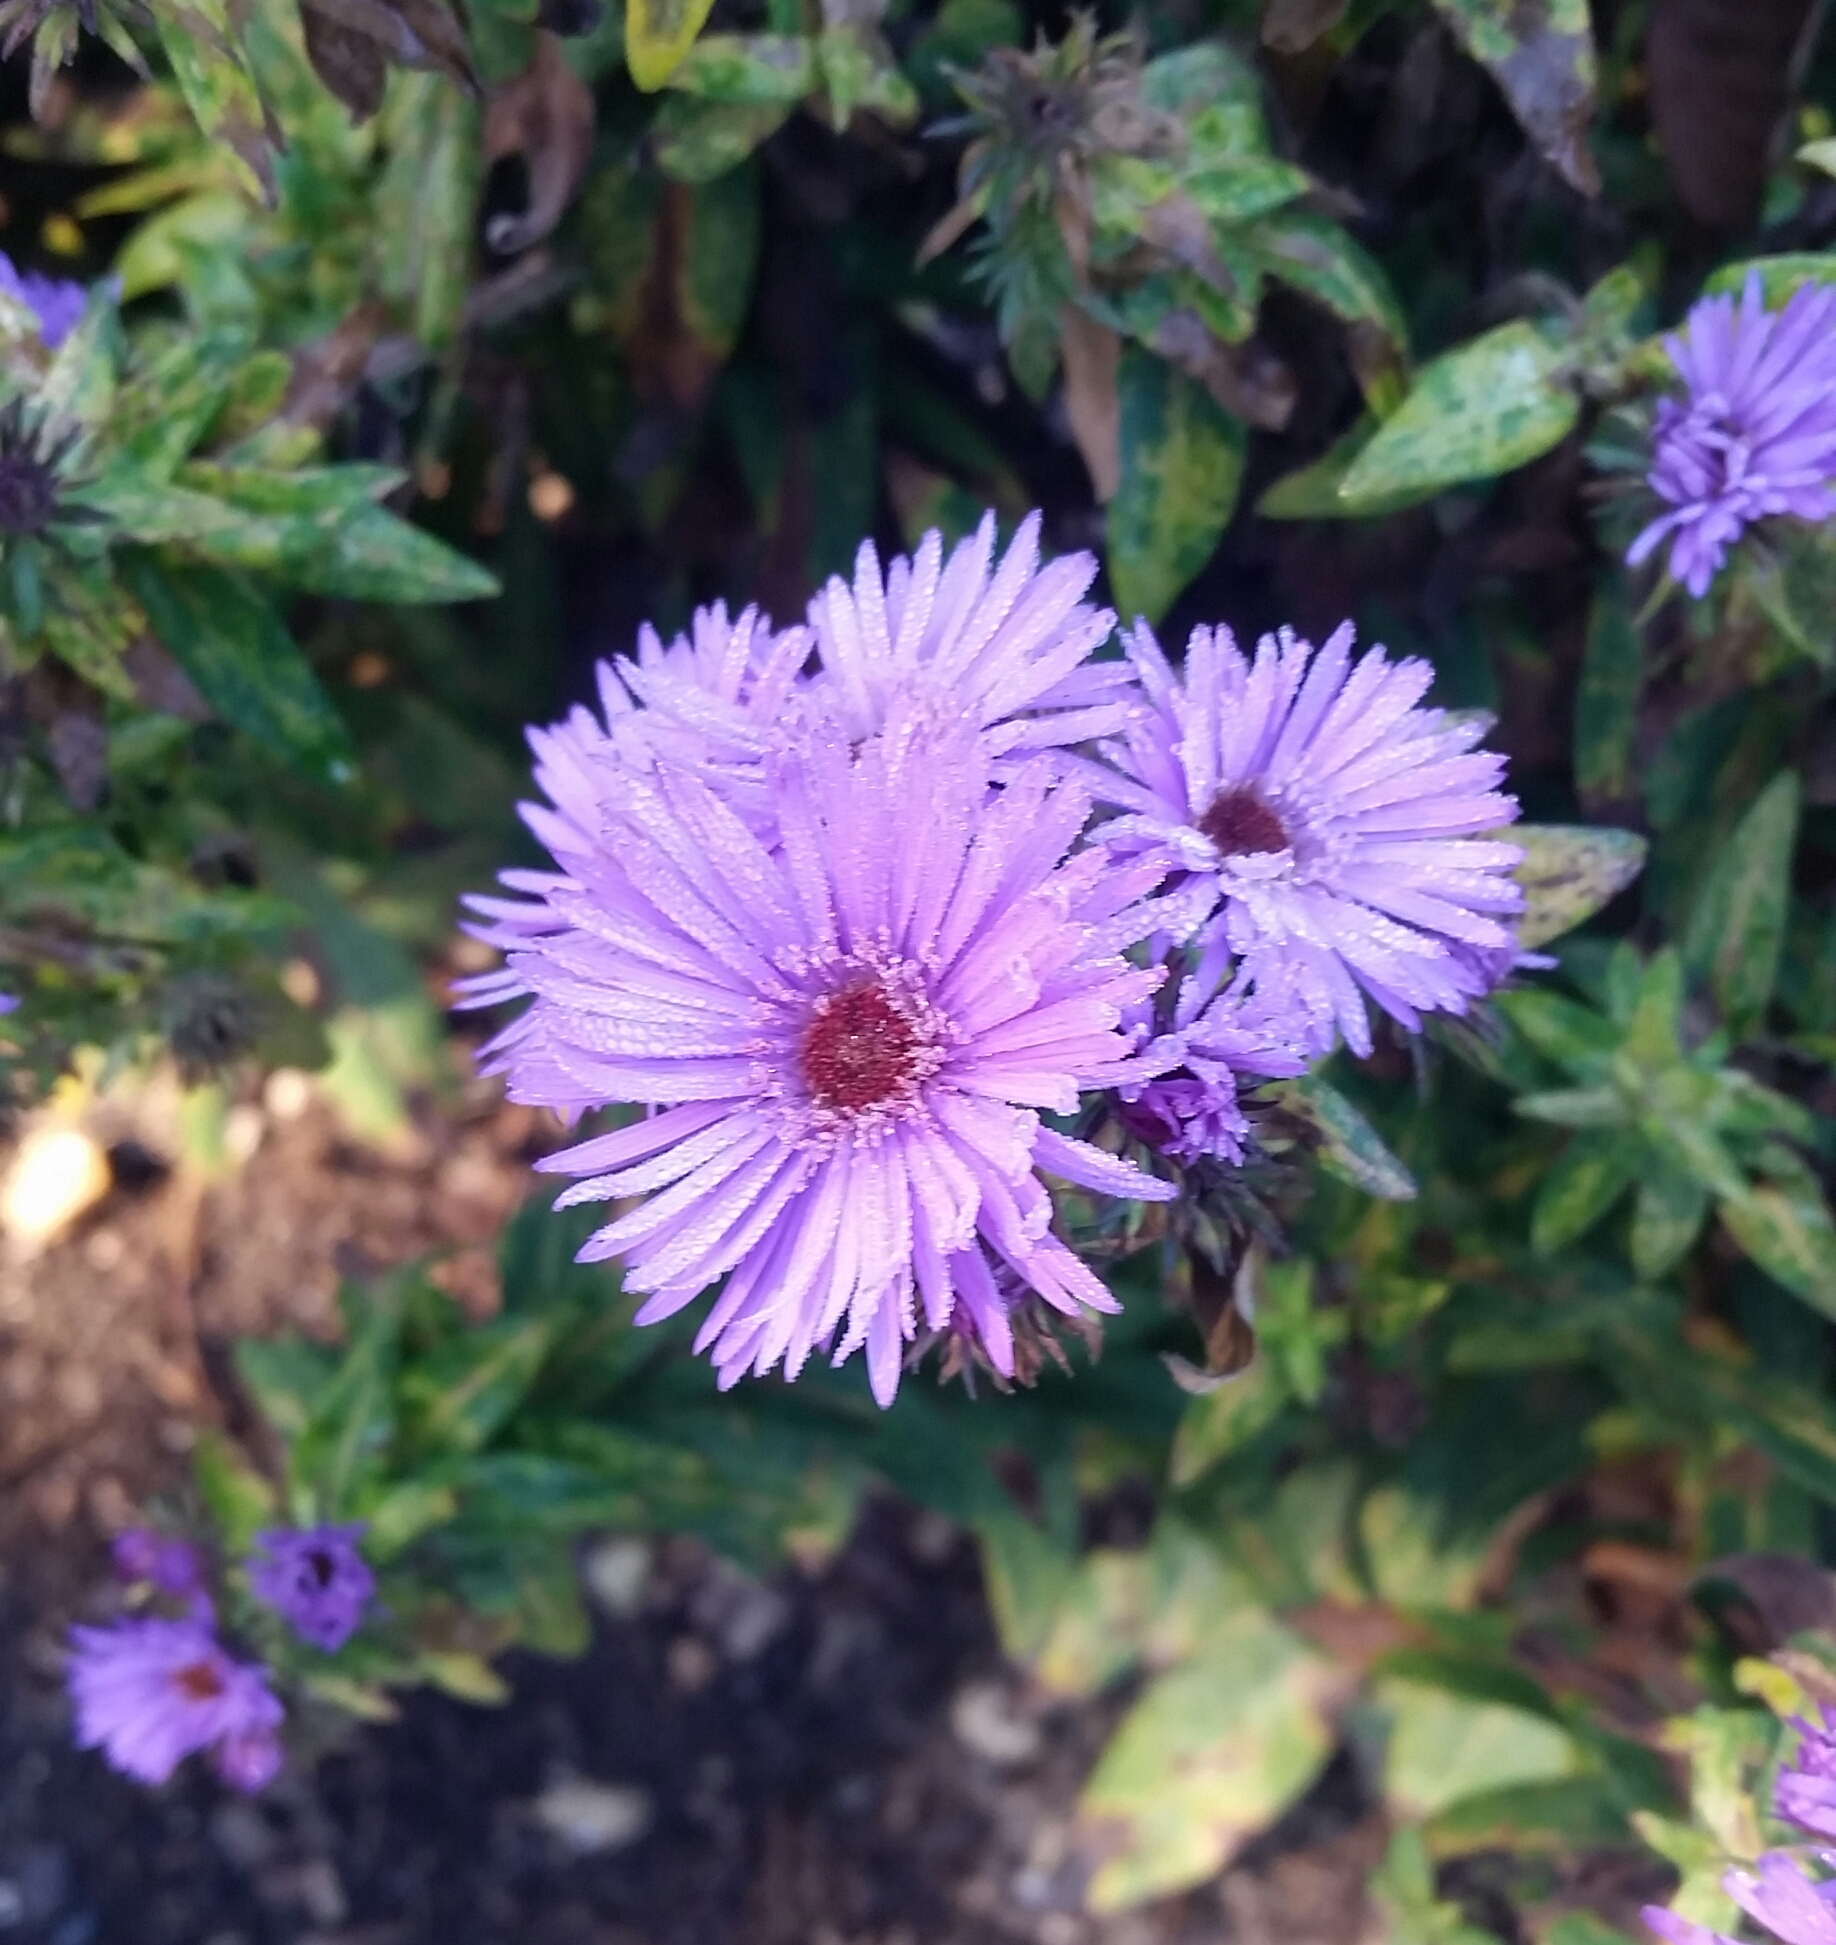 e60e08269f68 Symphyotrichum novae-angliae  Vibrant Dome  New England Aster  This beauty  has a purple flower that when the sun hits it just right